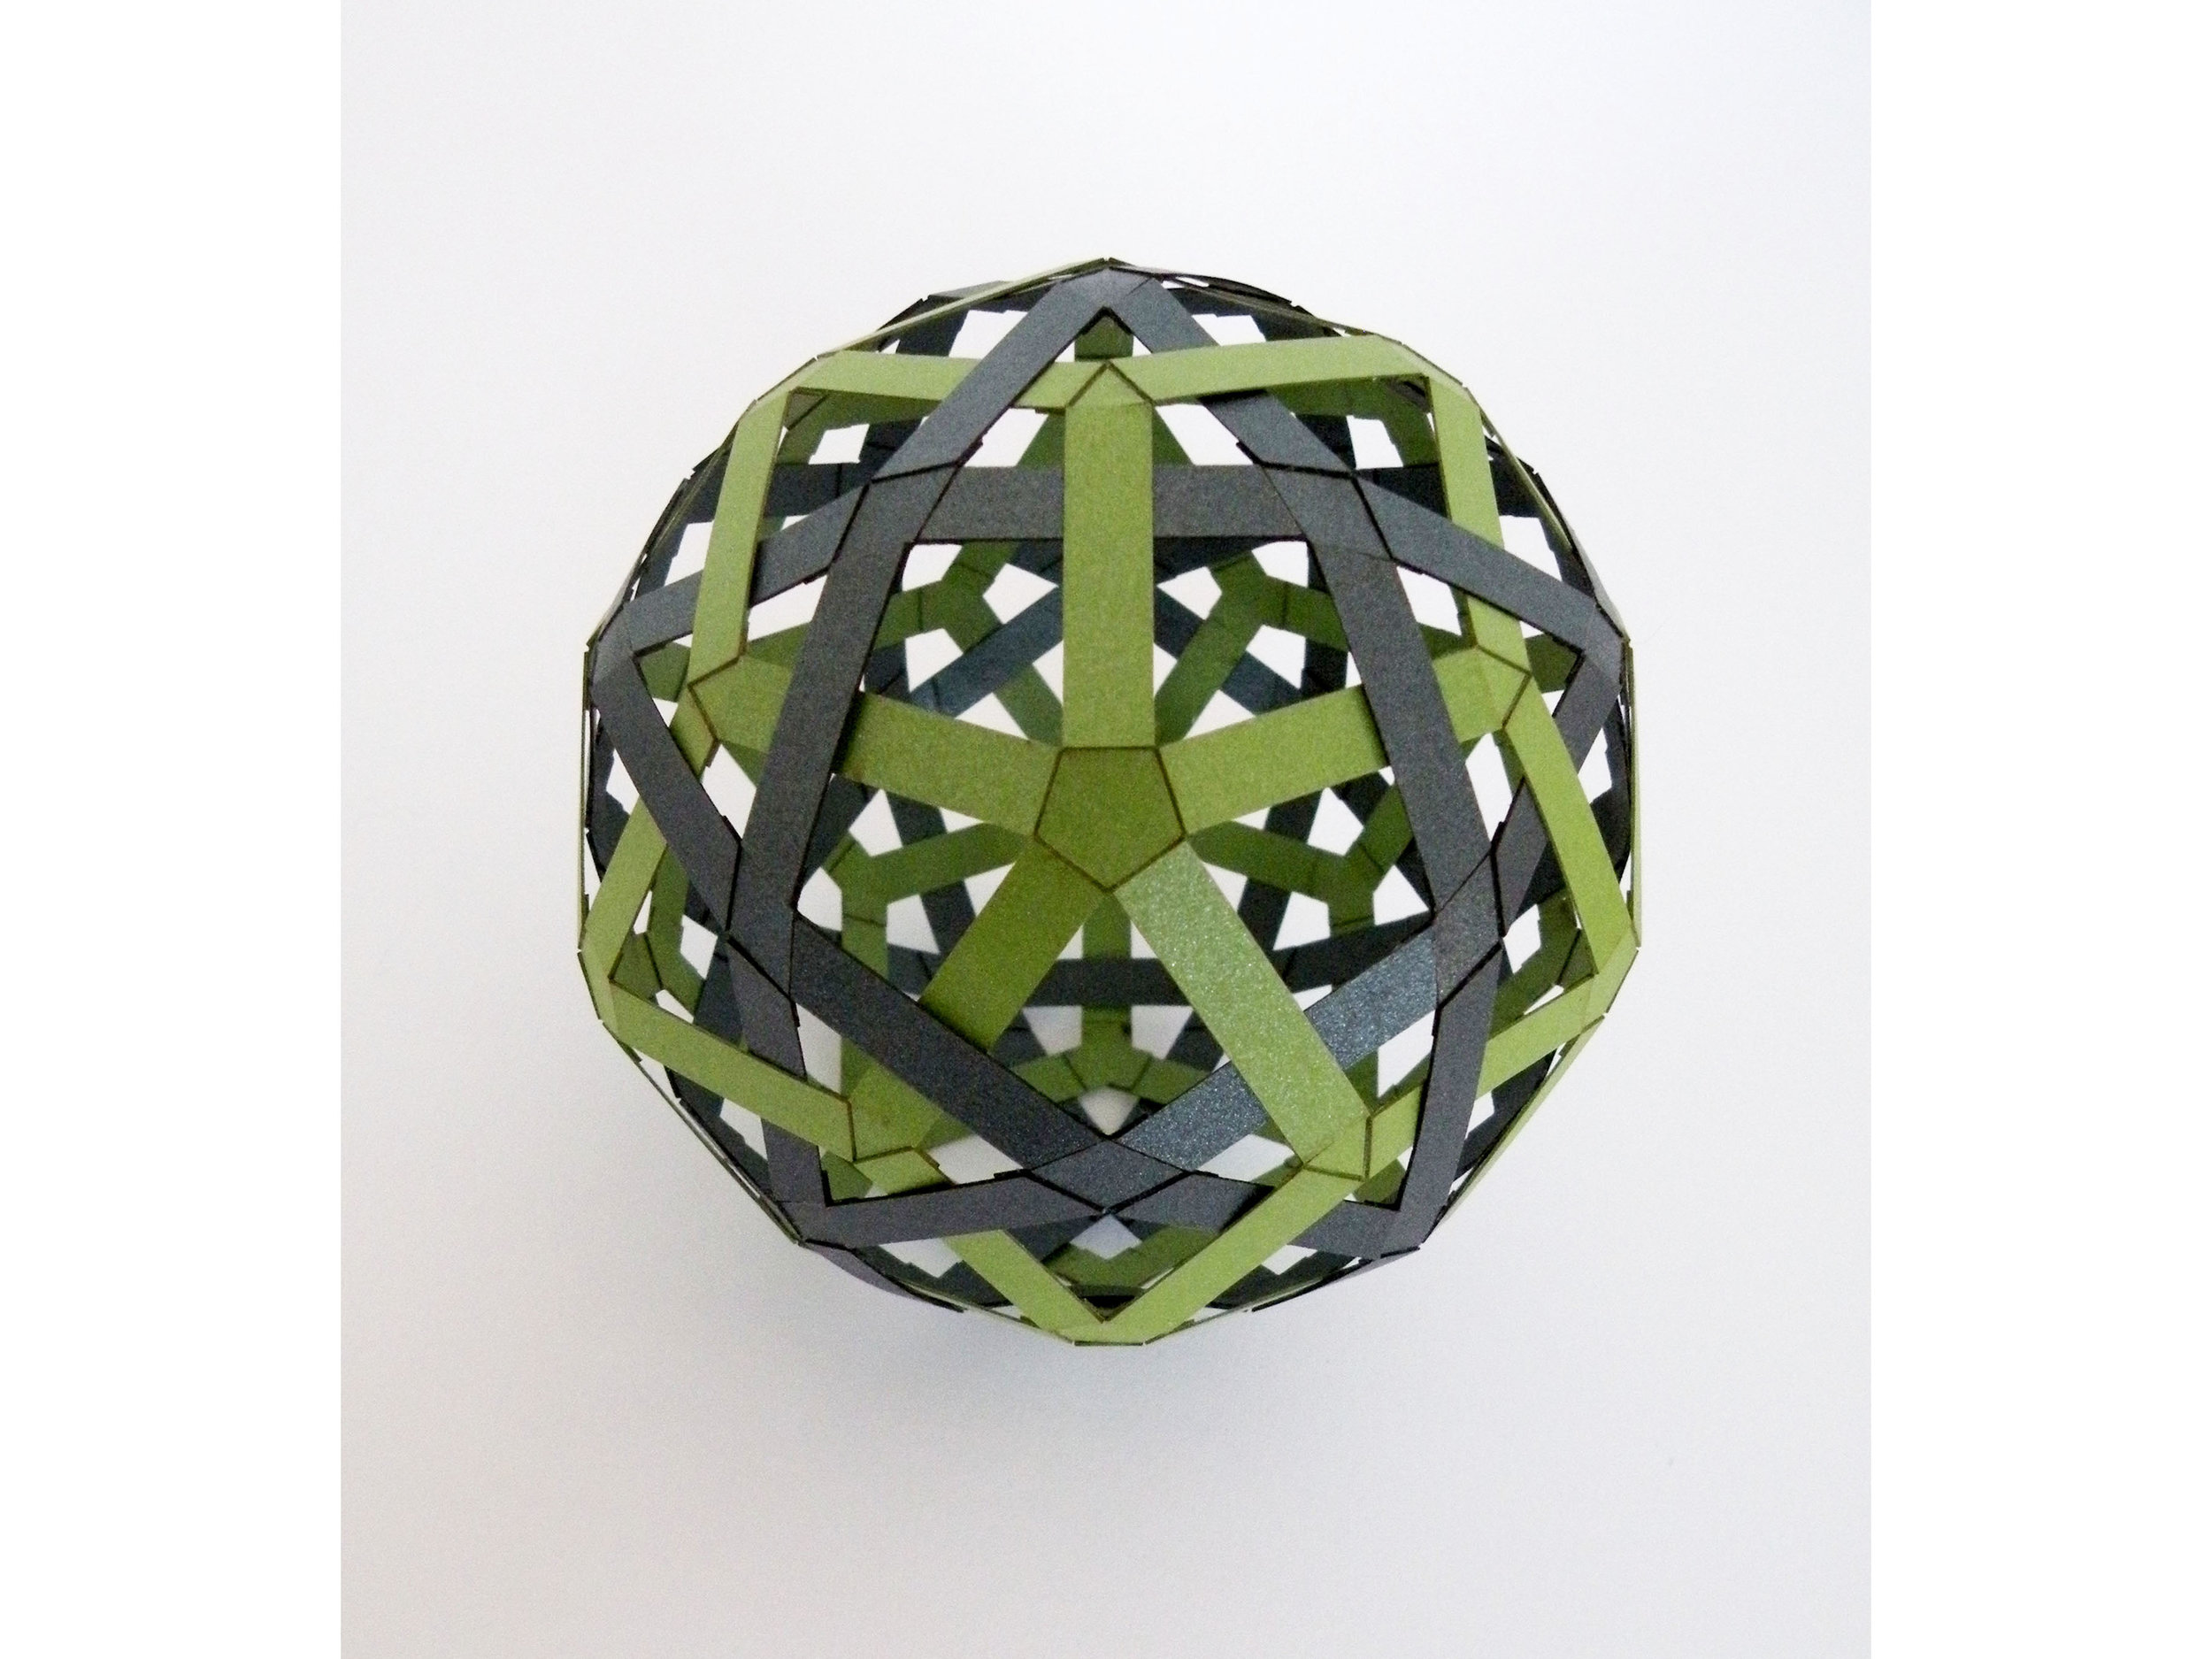 Woven Duals: Icosi-dodecahedron & Rhombic Triacontahedron